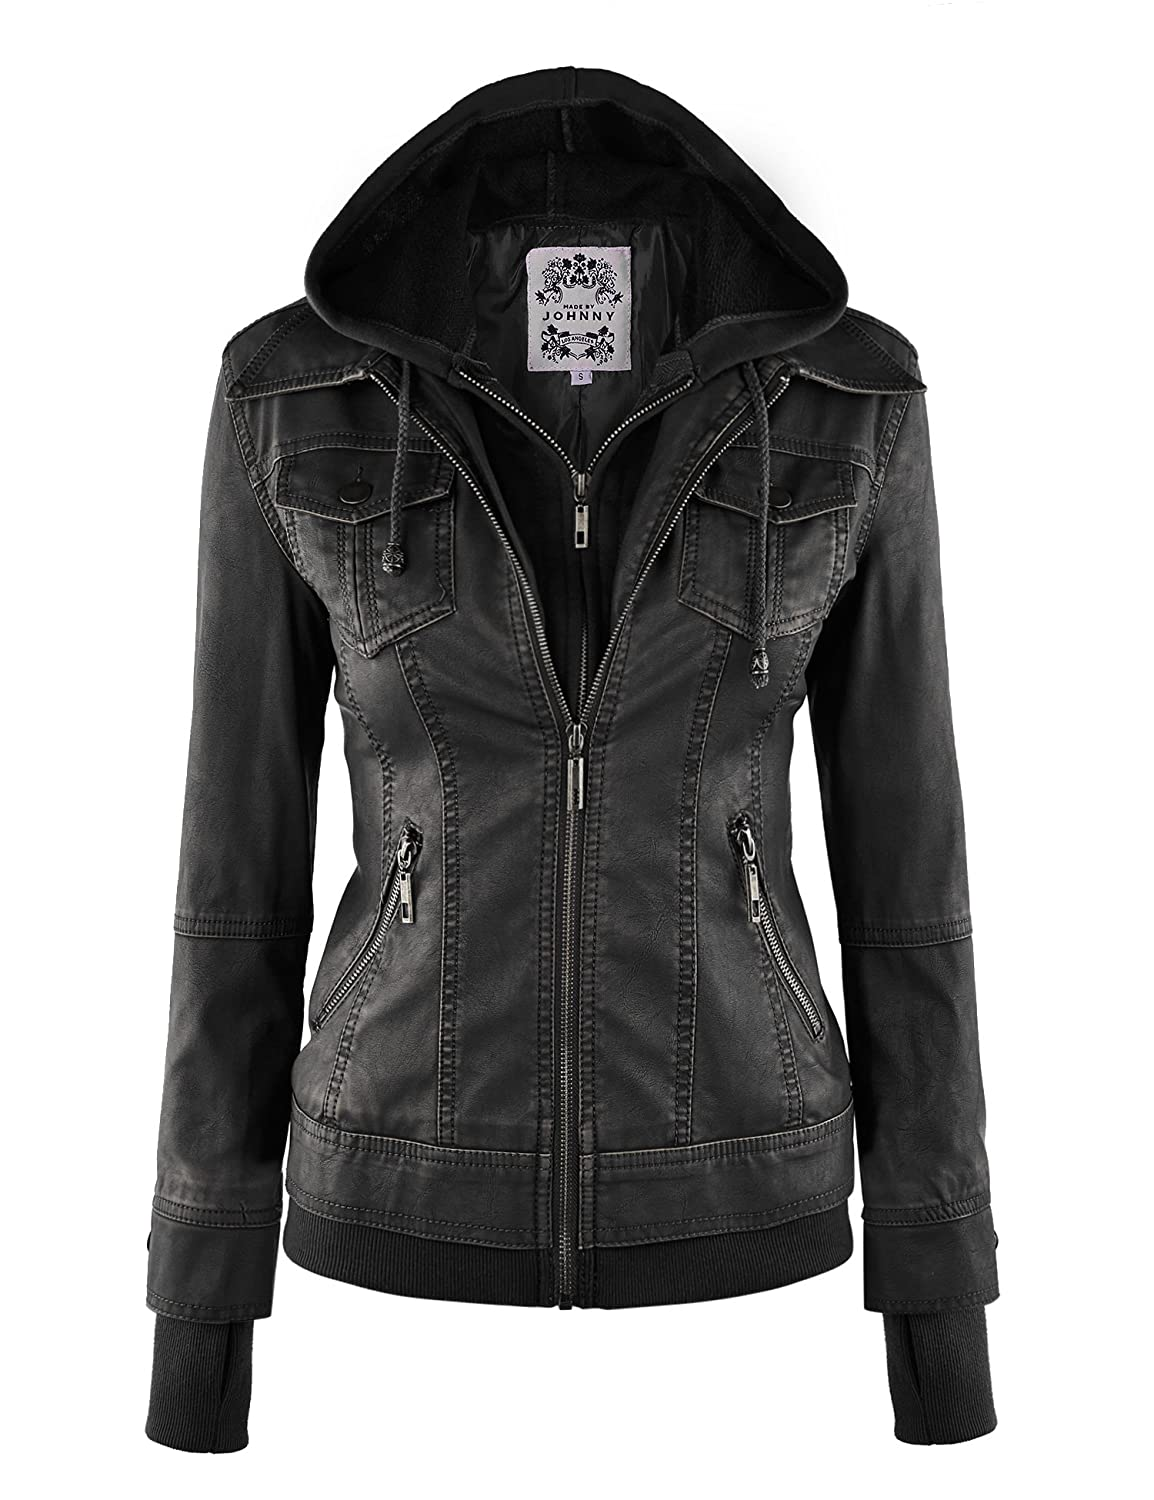 MBJ Womens Faux Leather Jacket with Hoodie at Amazon Women&39s Coats